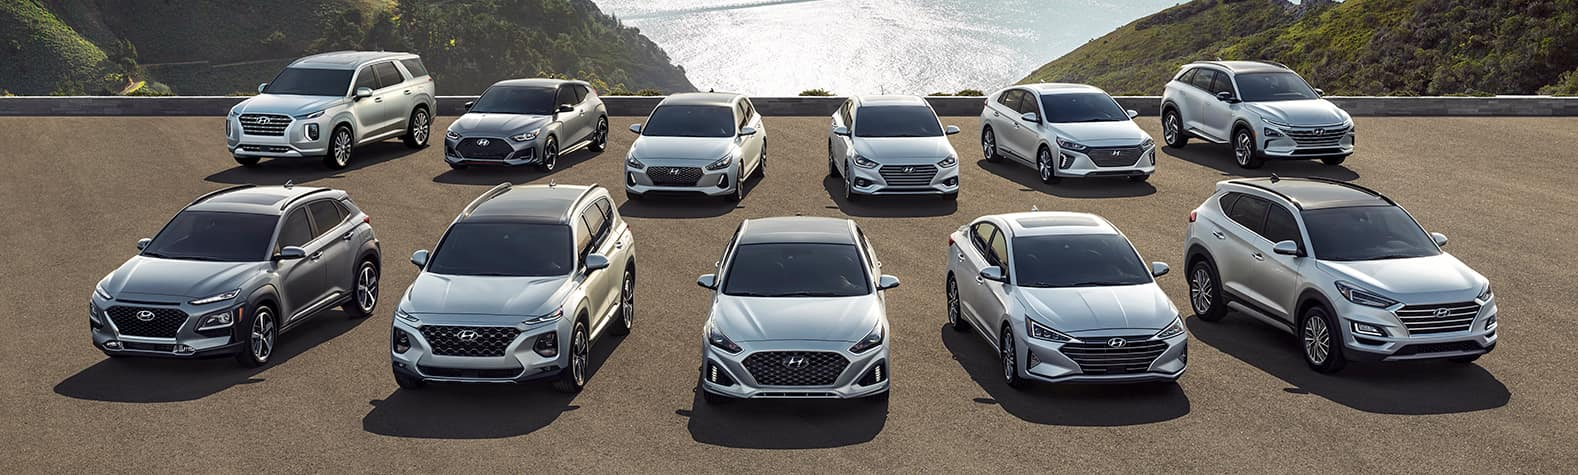 Hyundai New Vehicle Lineup